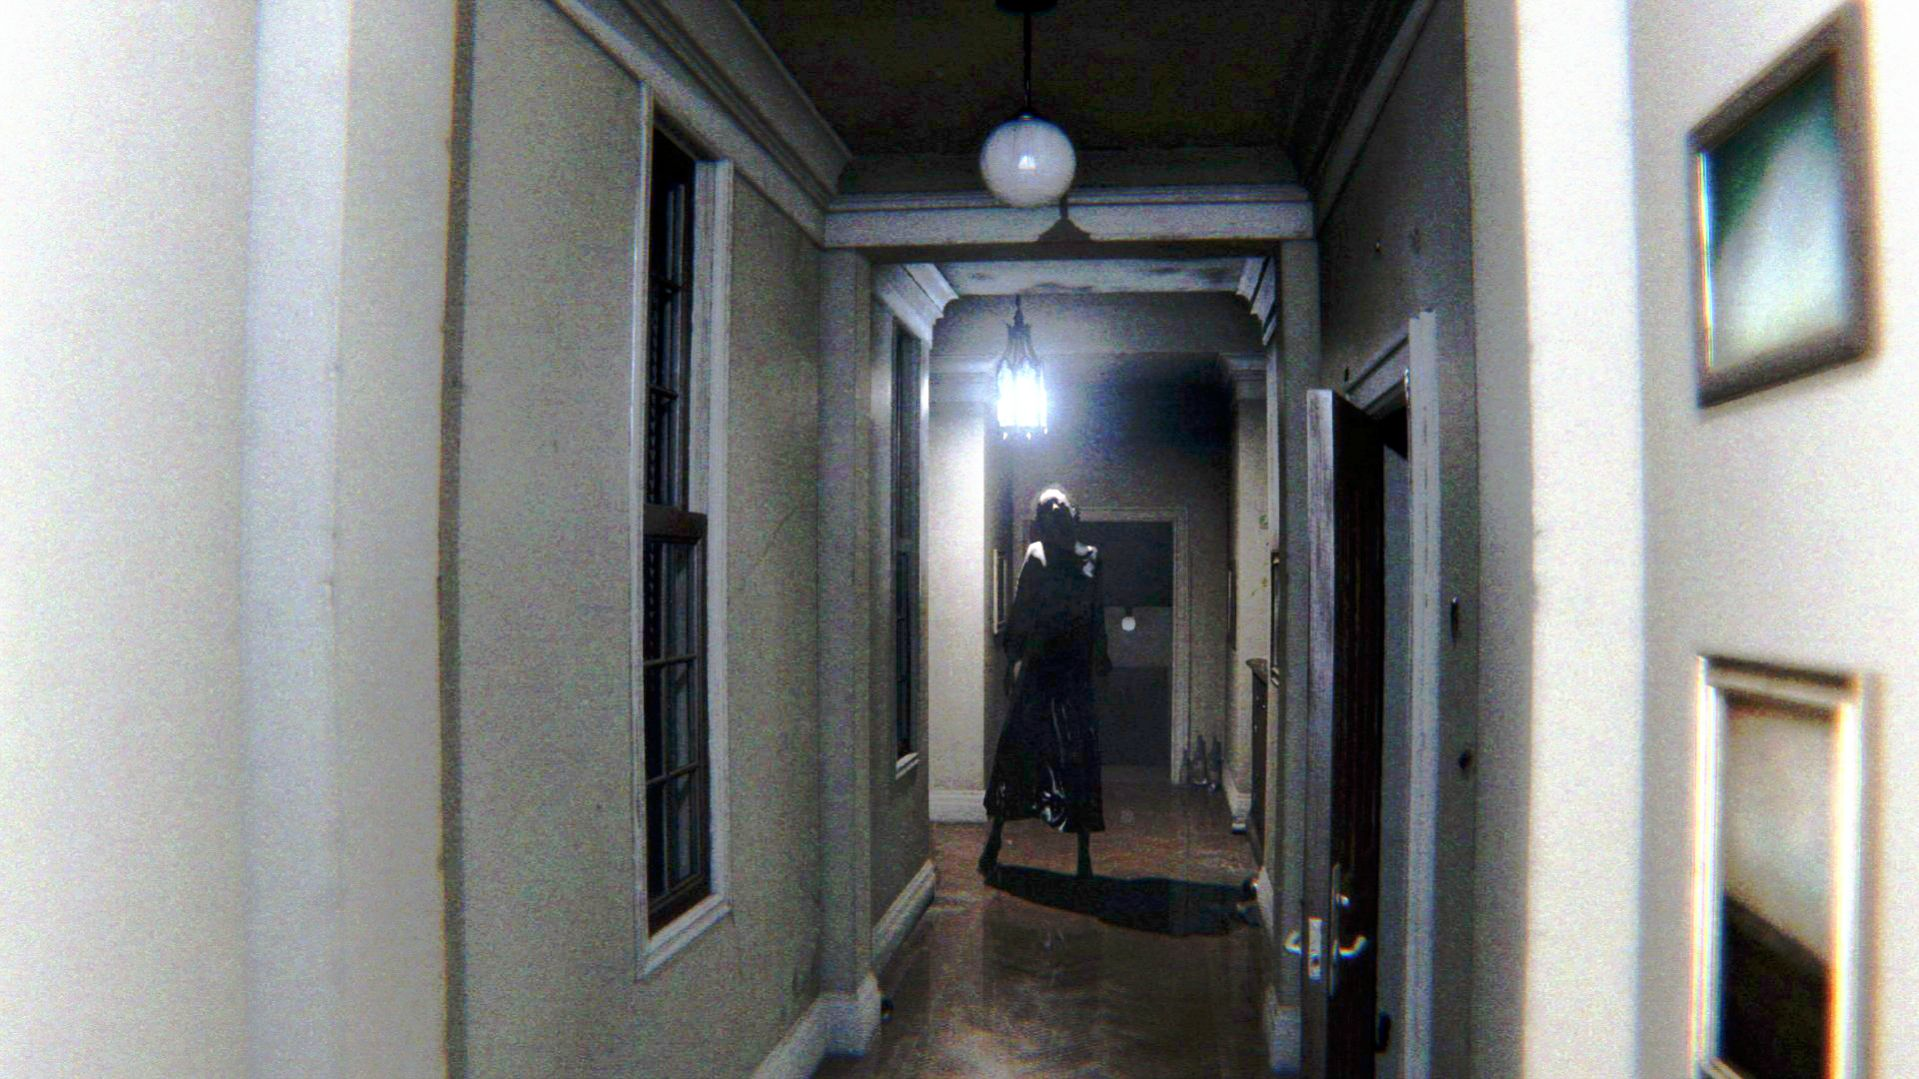 Silent Hills P.T. is absolutely terrifying.